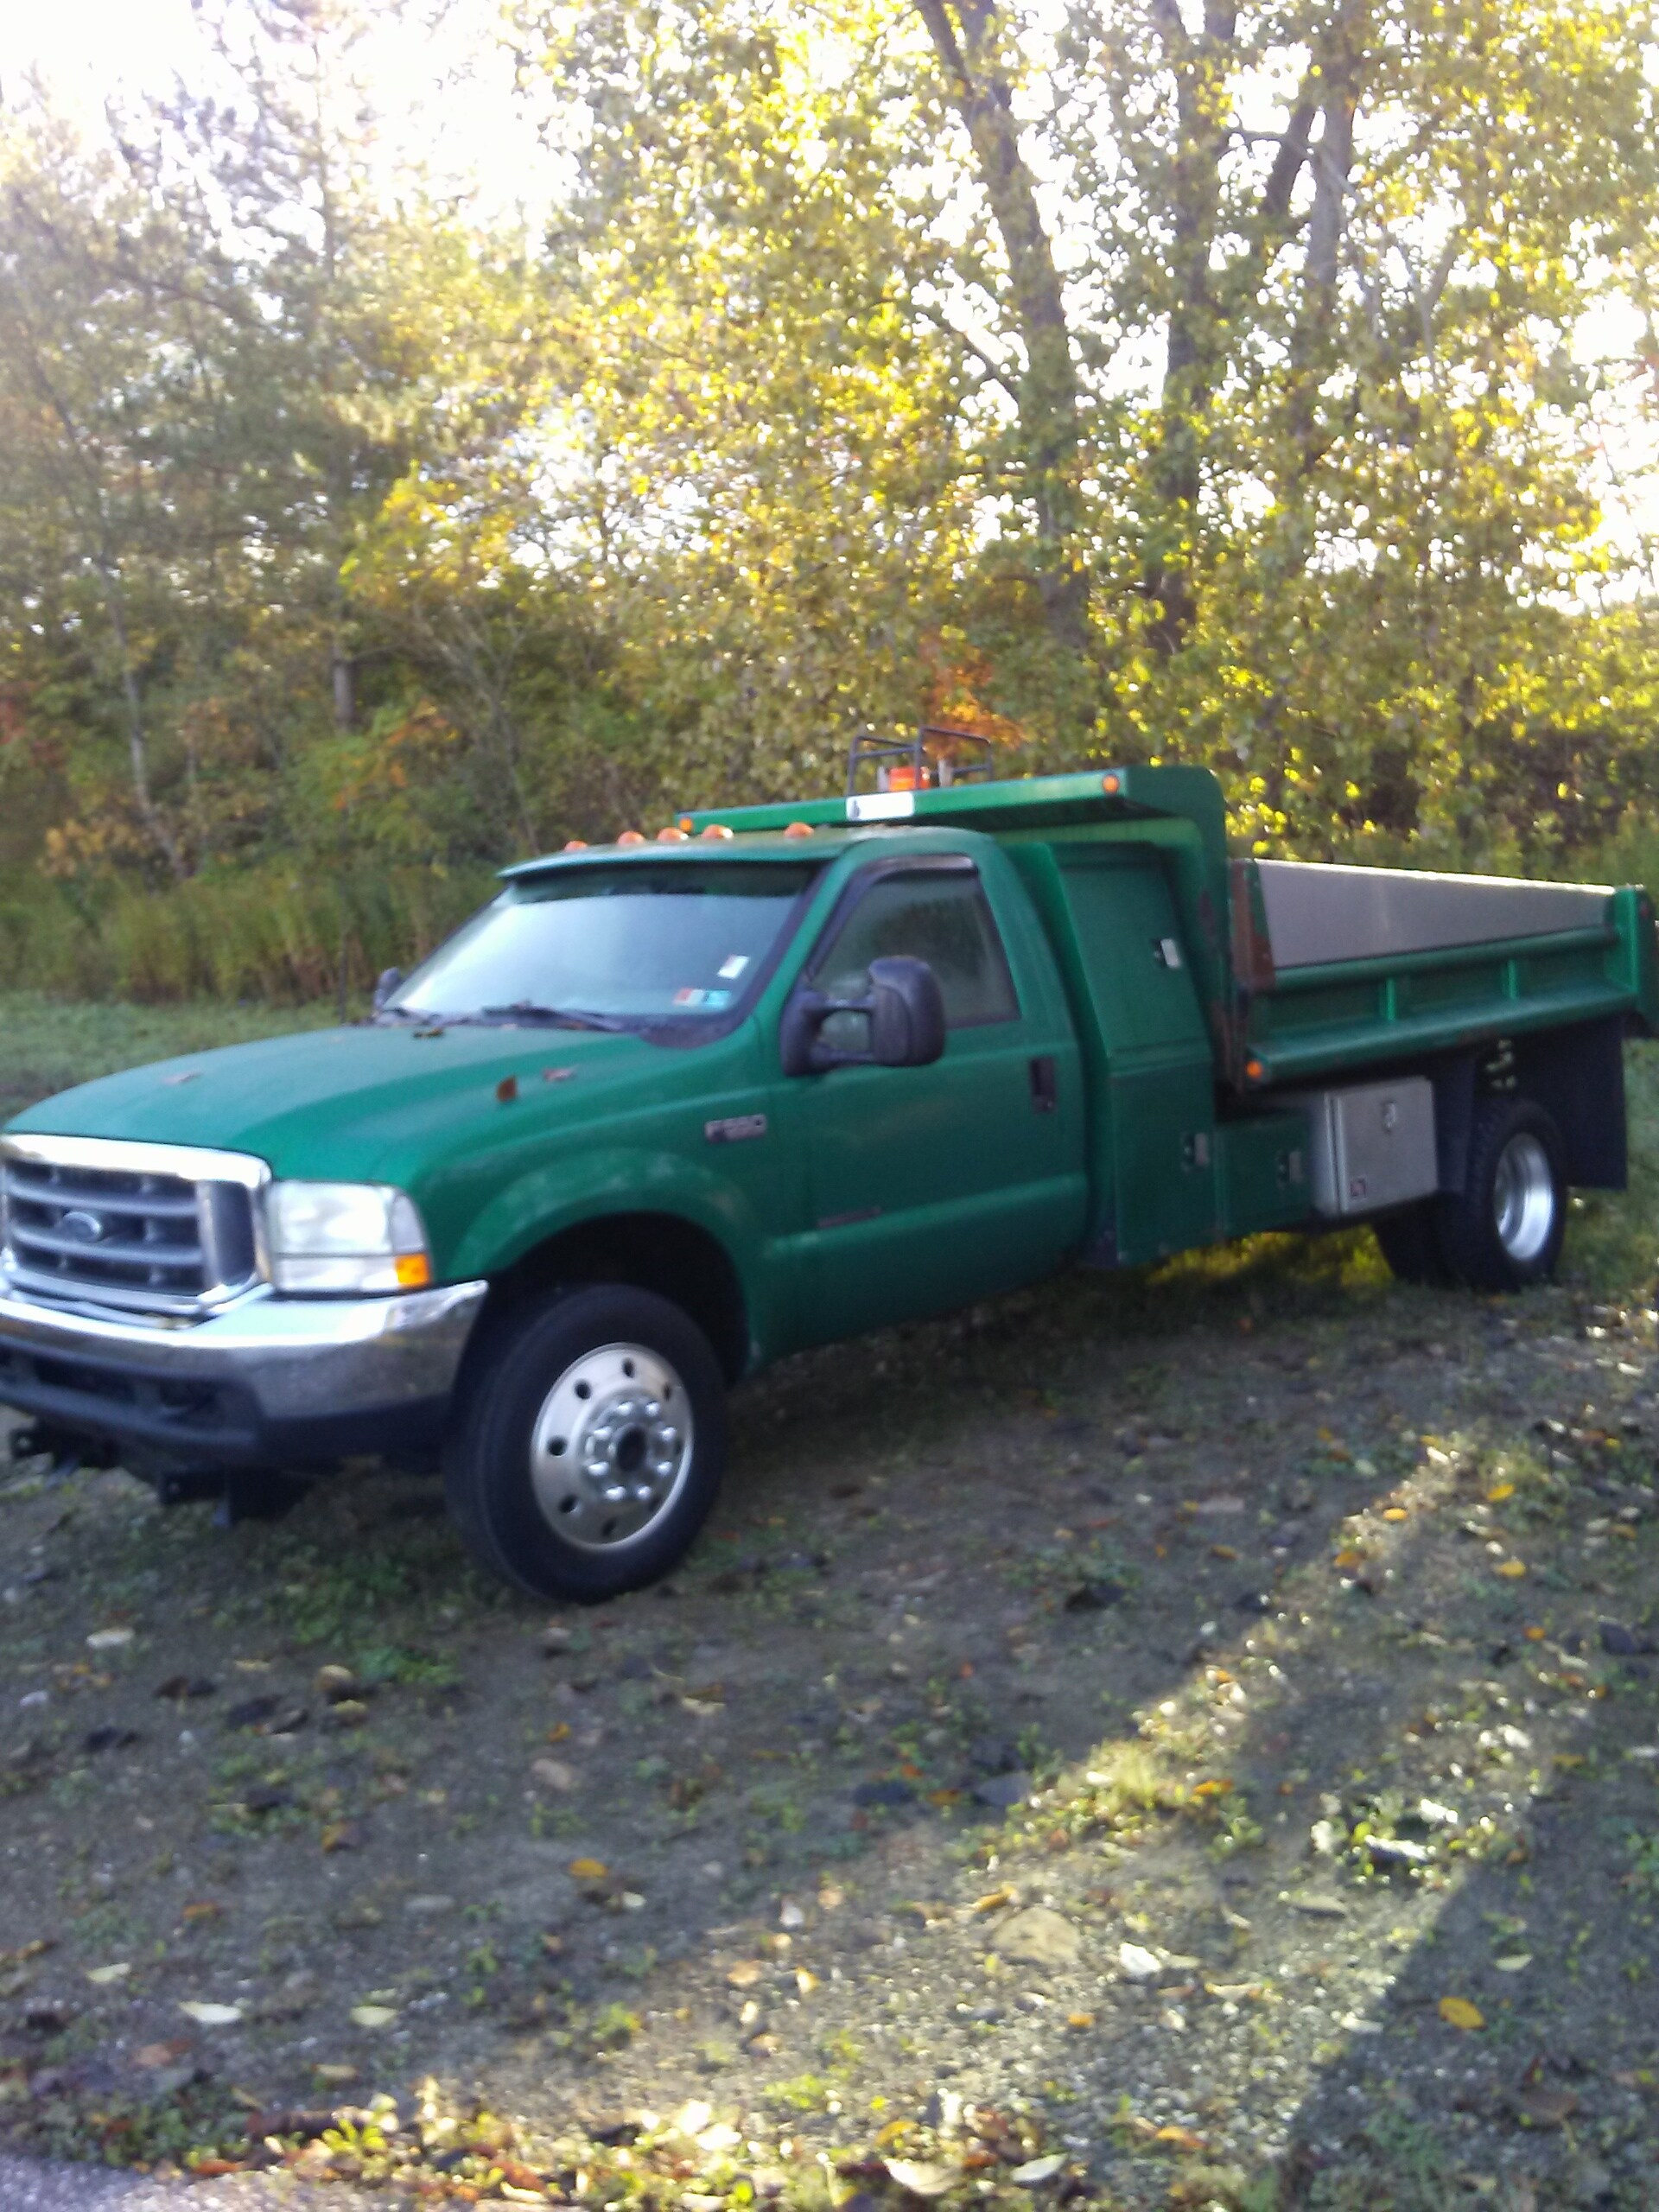 Featured used  2003 Ford F-550 Chassis Cab XL Regular Cab DRW 7.3L V8 Power Stroke Diesel Regular Cab Pickup for sale in Edinboro, PA